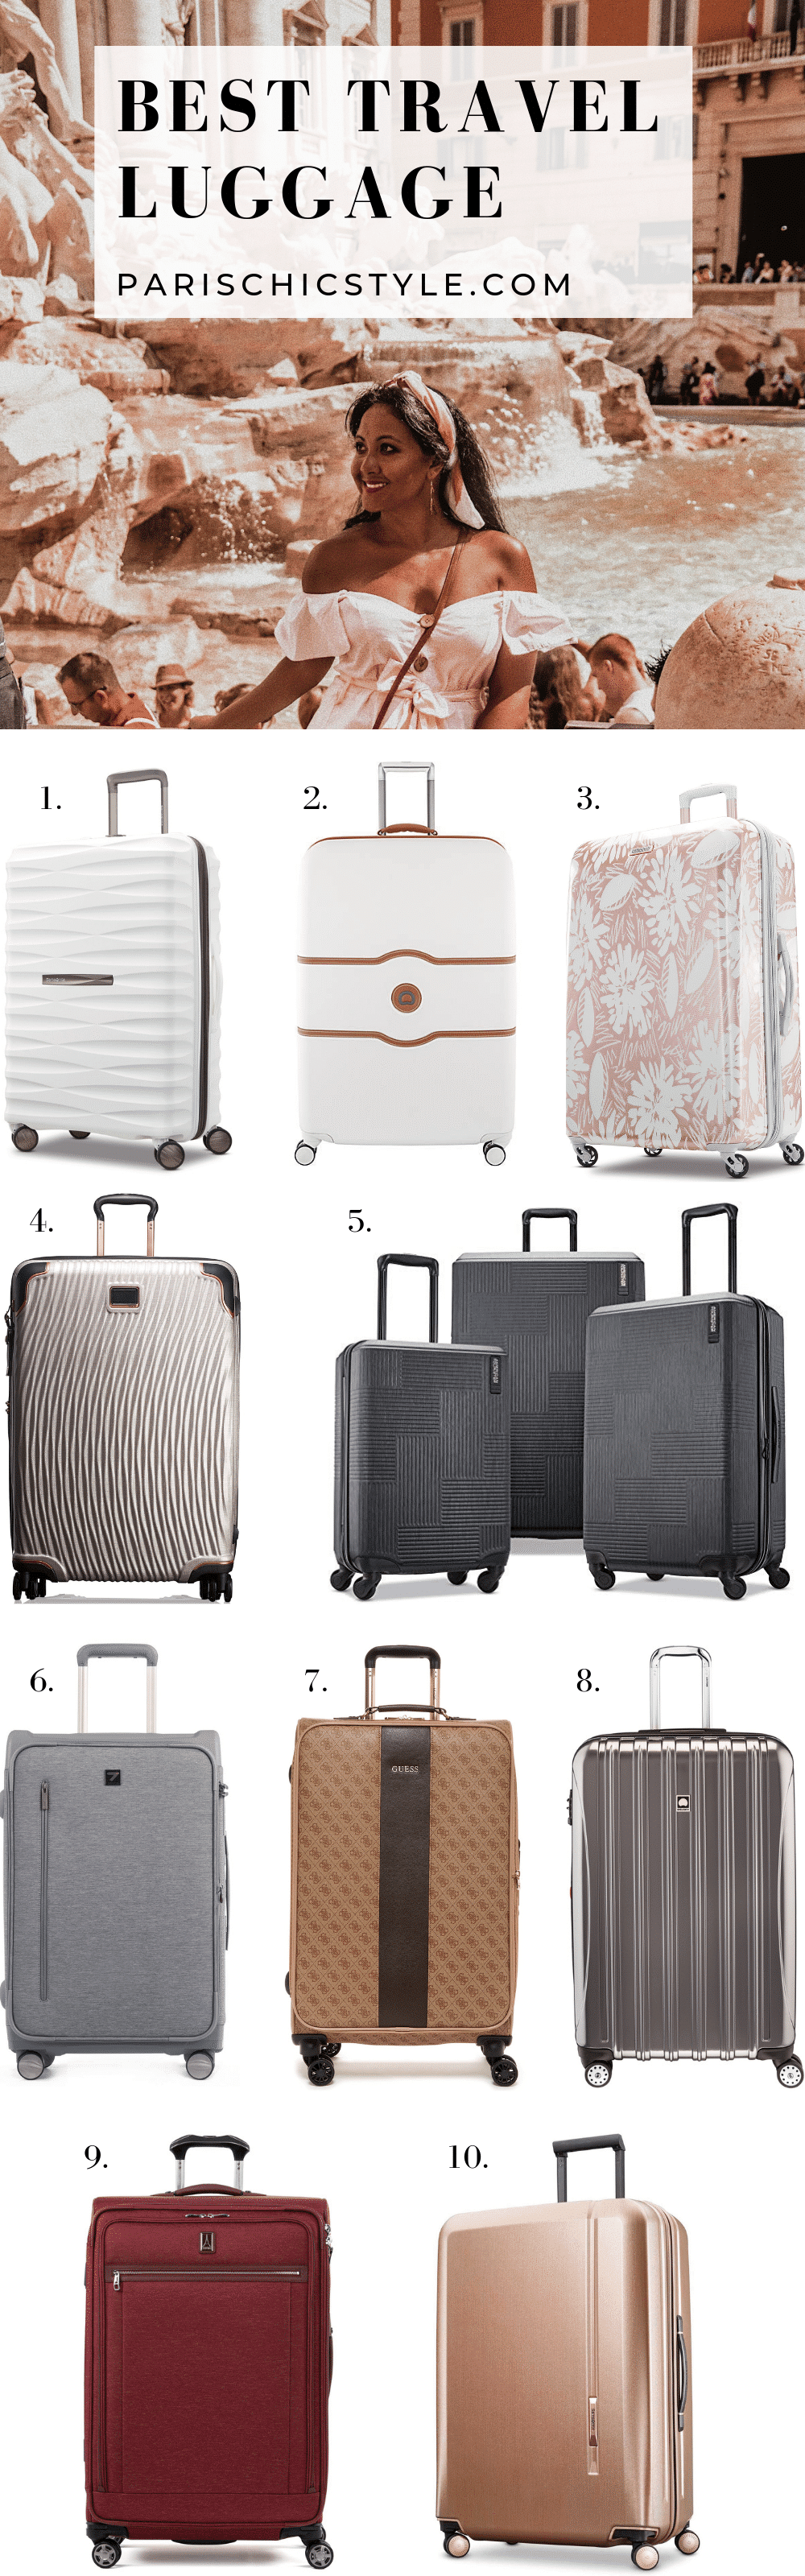 best-travel-luggage-checked-lightweight-suitcases-hardcase-softshell-spinner-wheels-paris-chic-style-pinterest (1)